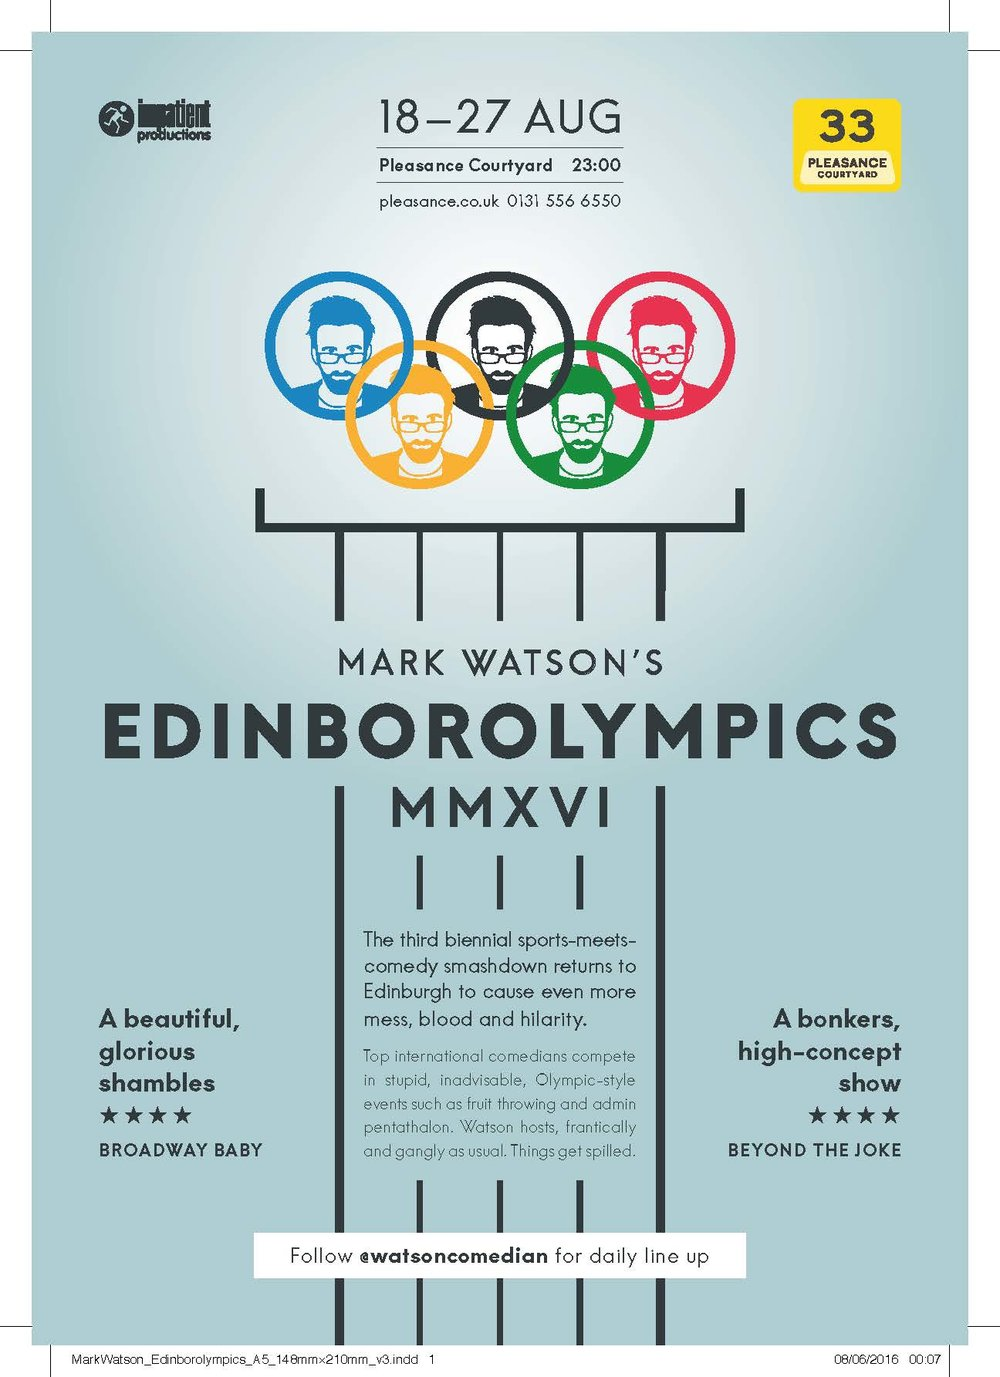 edinburgh 2016: edinborolympics